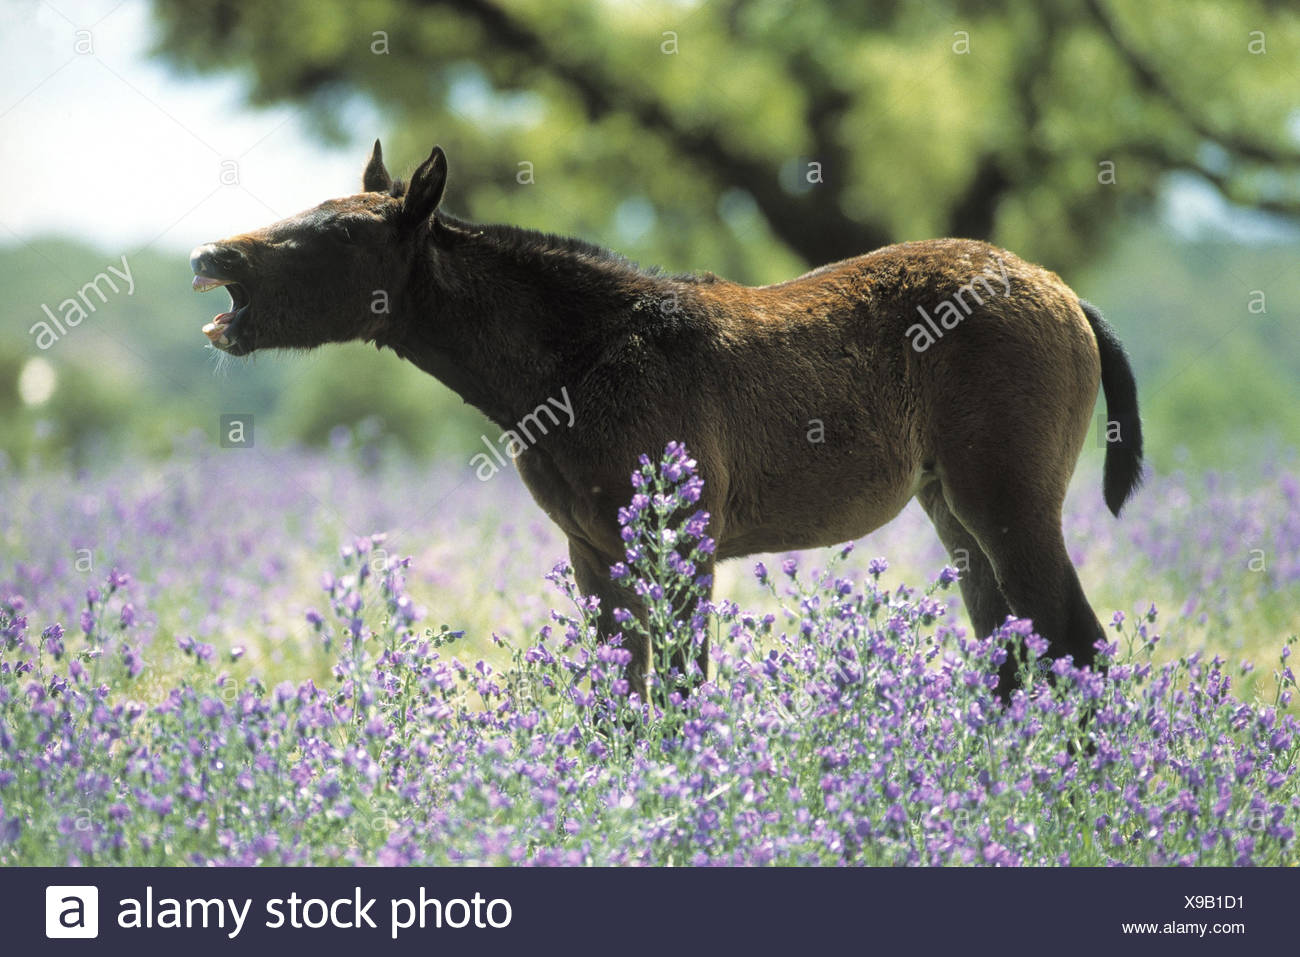 Horse, Lusitaner foal, neigh, side view, flower meadow, animals, mammal, mammals, young animal, foal, horses, young, horse's race, thoroughbred horse, Lusitano, benefit animal, meadow, flowers, preview - Stock Image